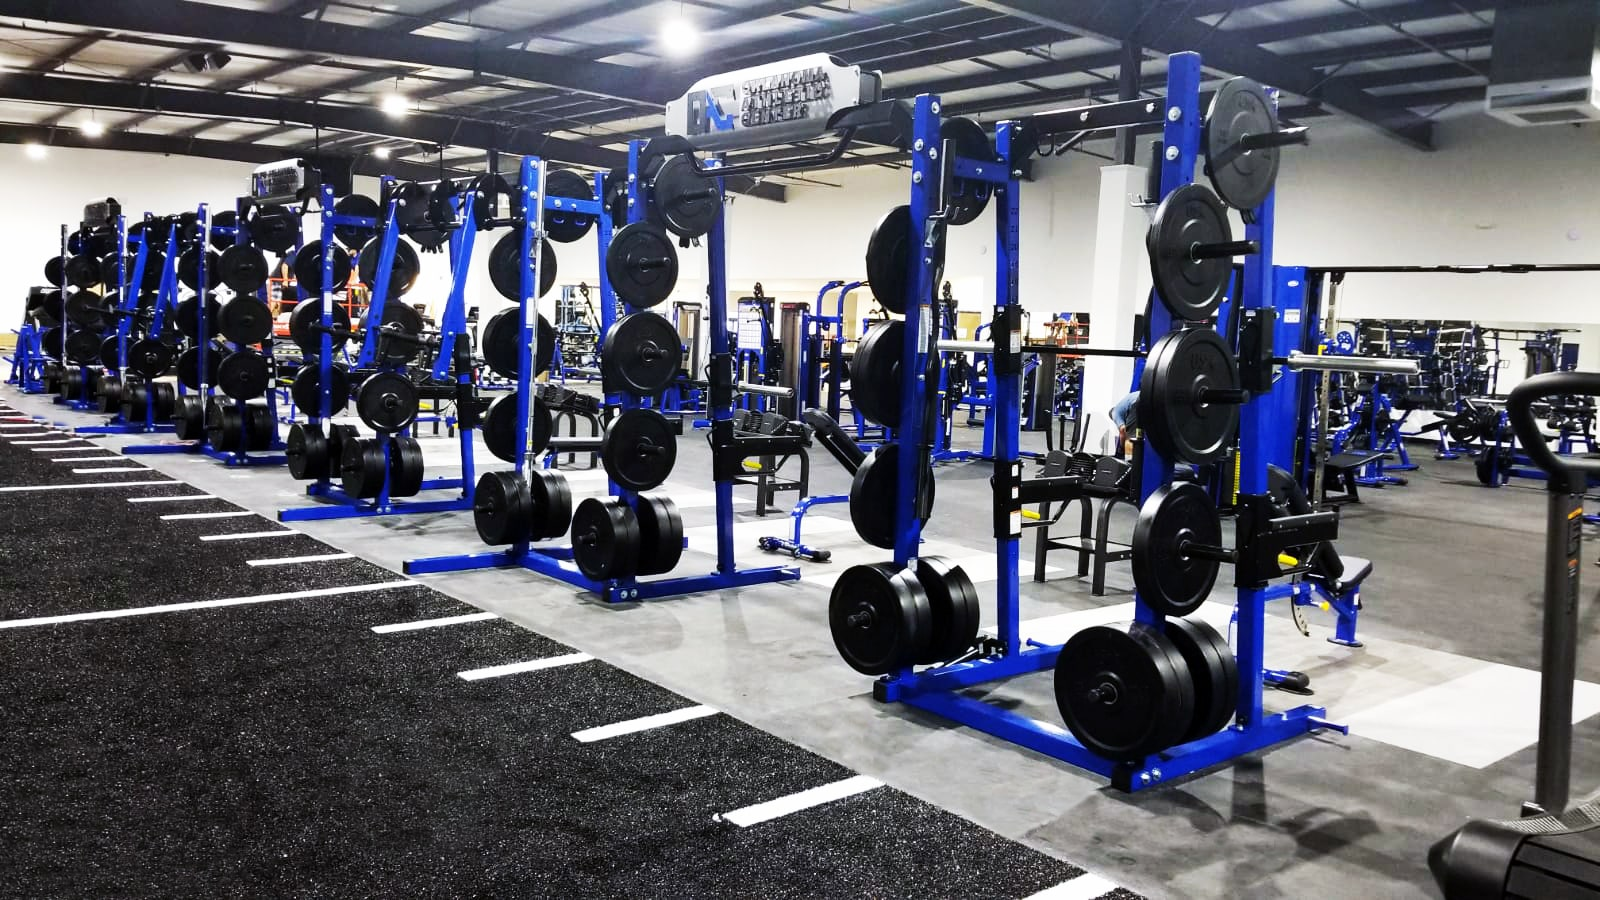 TuffStuff Commercial Strength: Oklahoma Athletic Center Fitness & Performance Gym